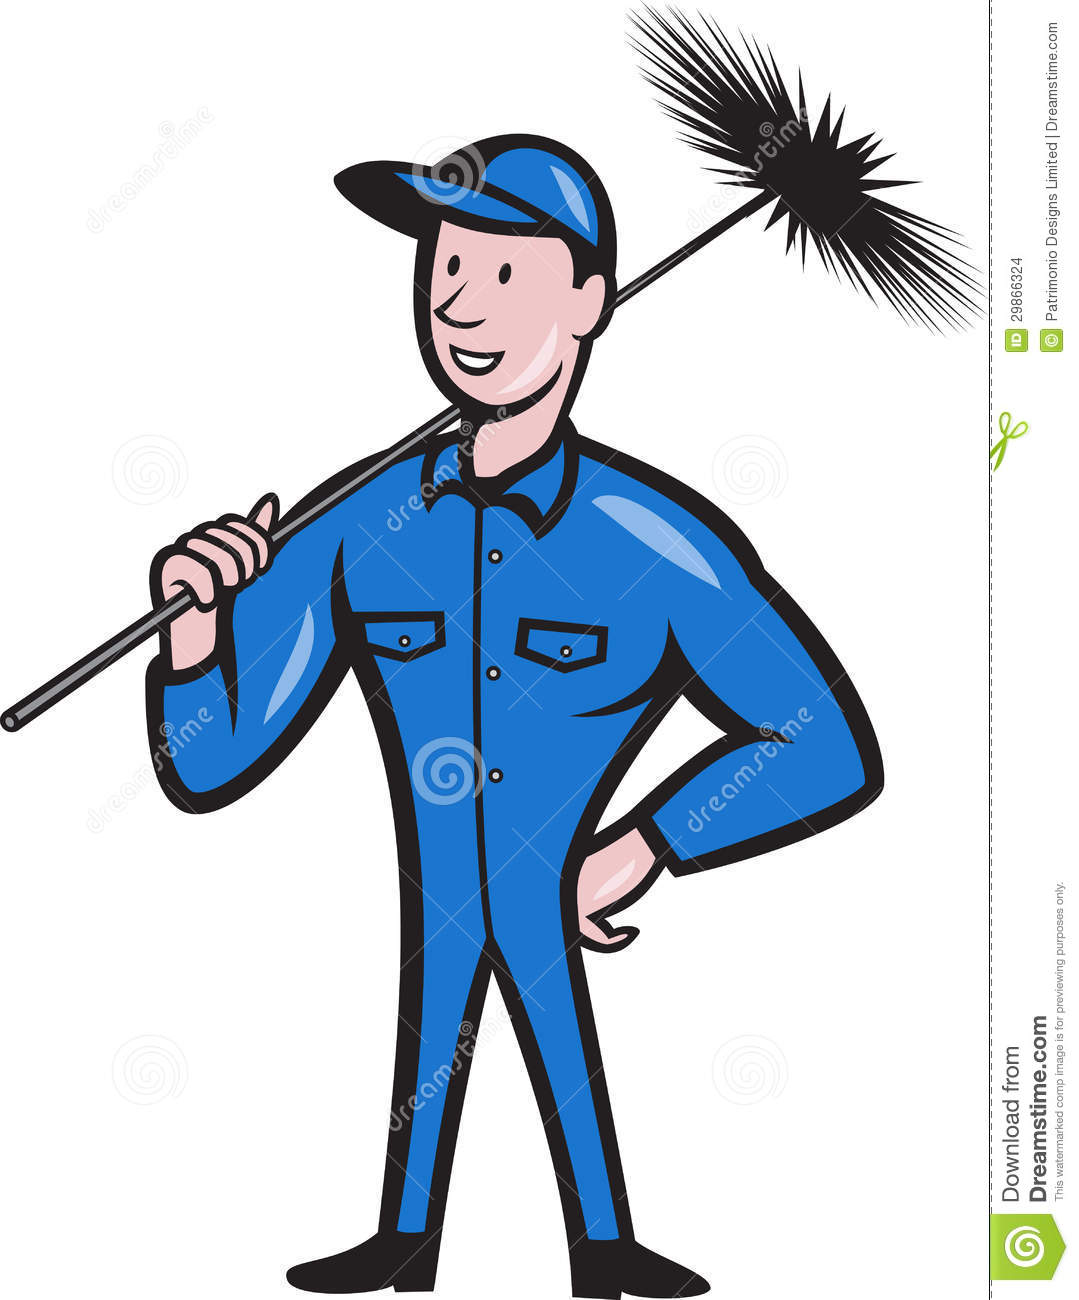 clip art illustrations cleaning - photo #29